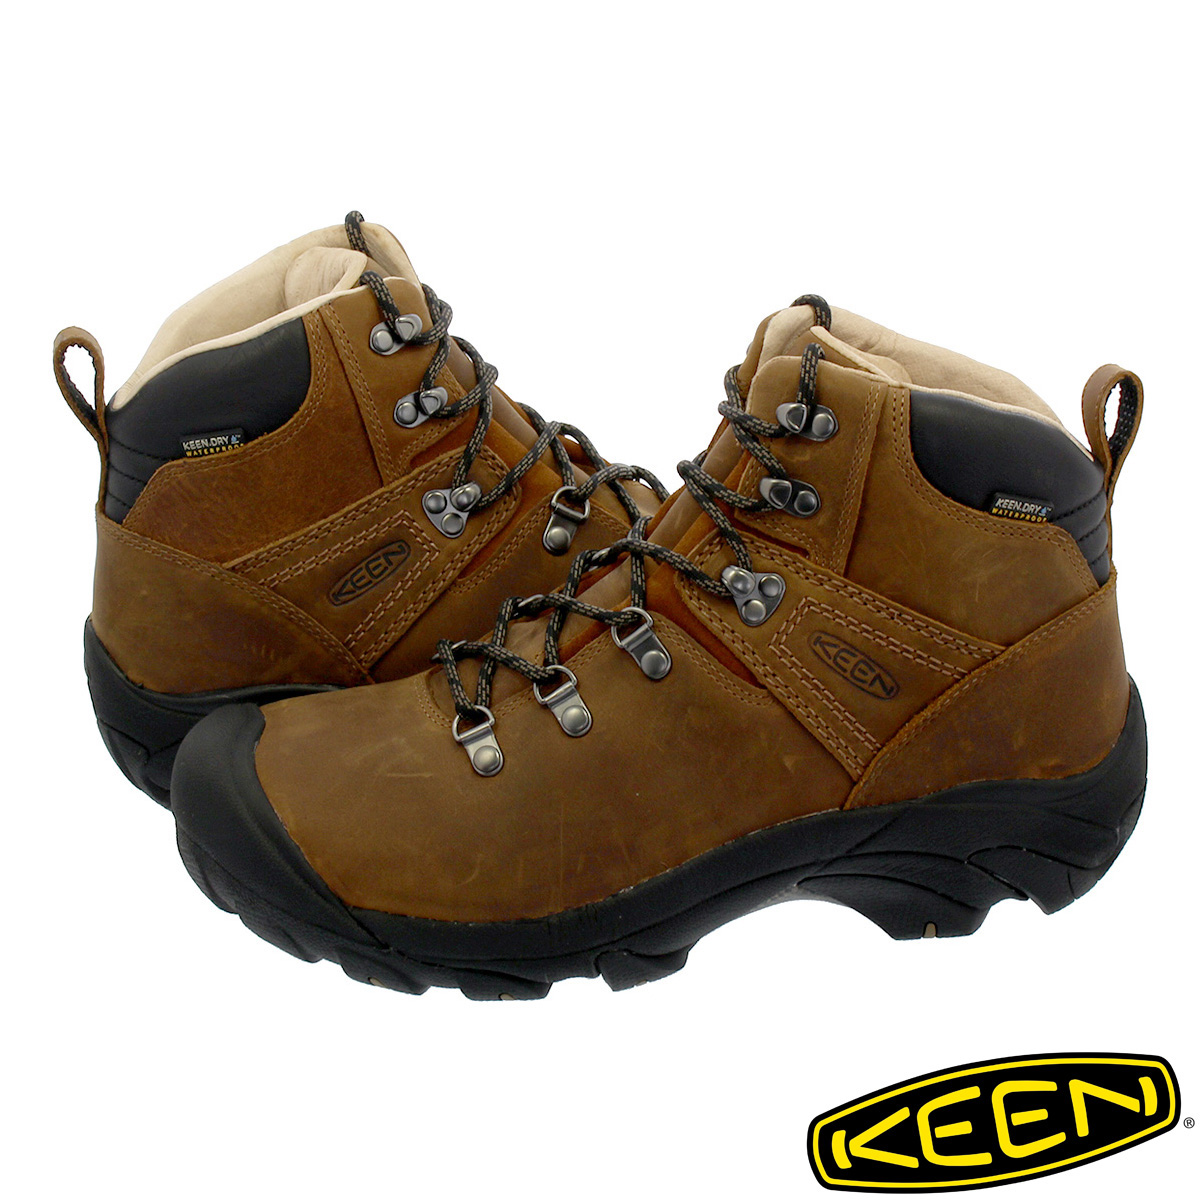 ad654475643860 LOWTEX BIG-SMALL SHOP  KEEN MEN PYRENEES keen men Pyrenees SYRUP ...